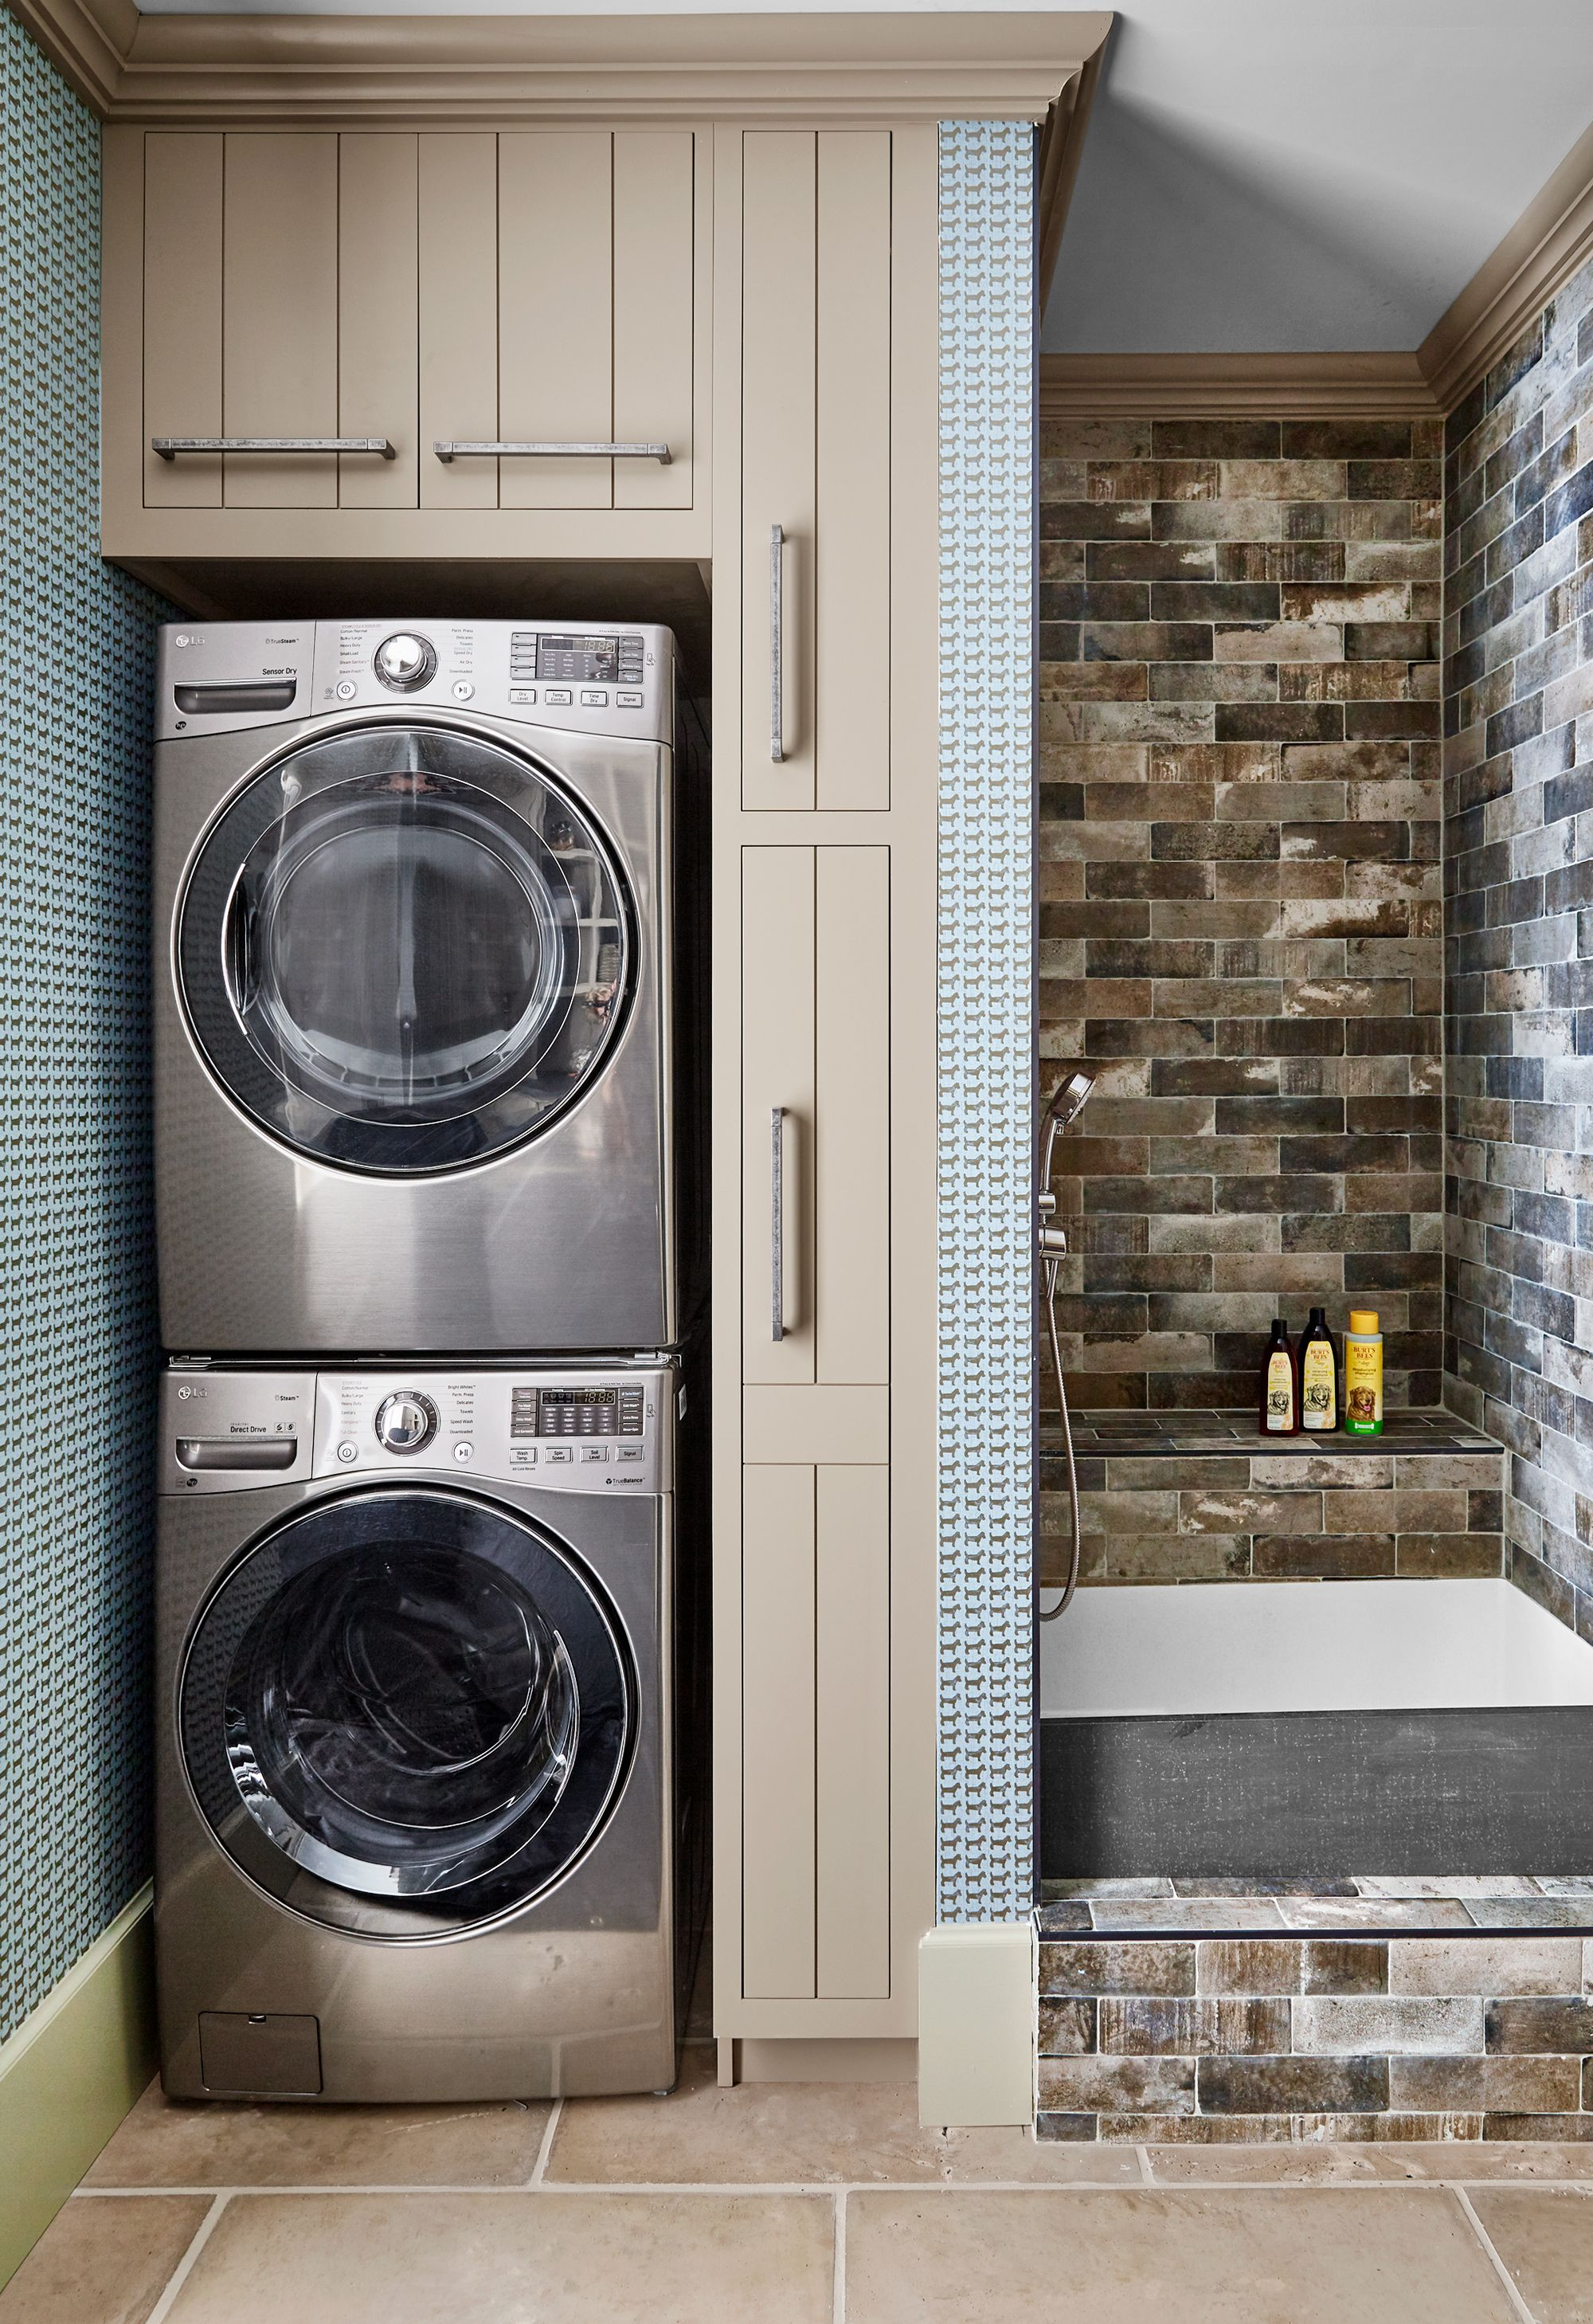 11 Small Laundry Room Ideas - Small Laundry Room Storage Tips